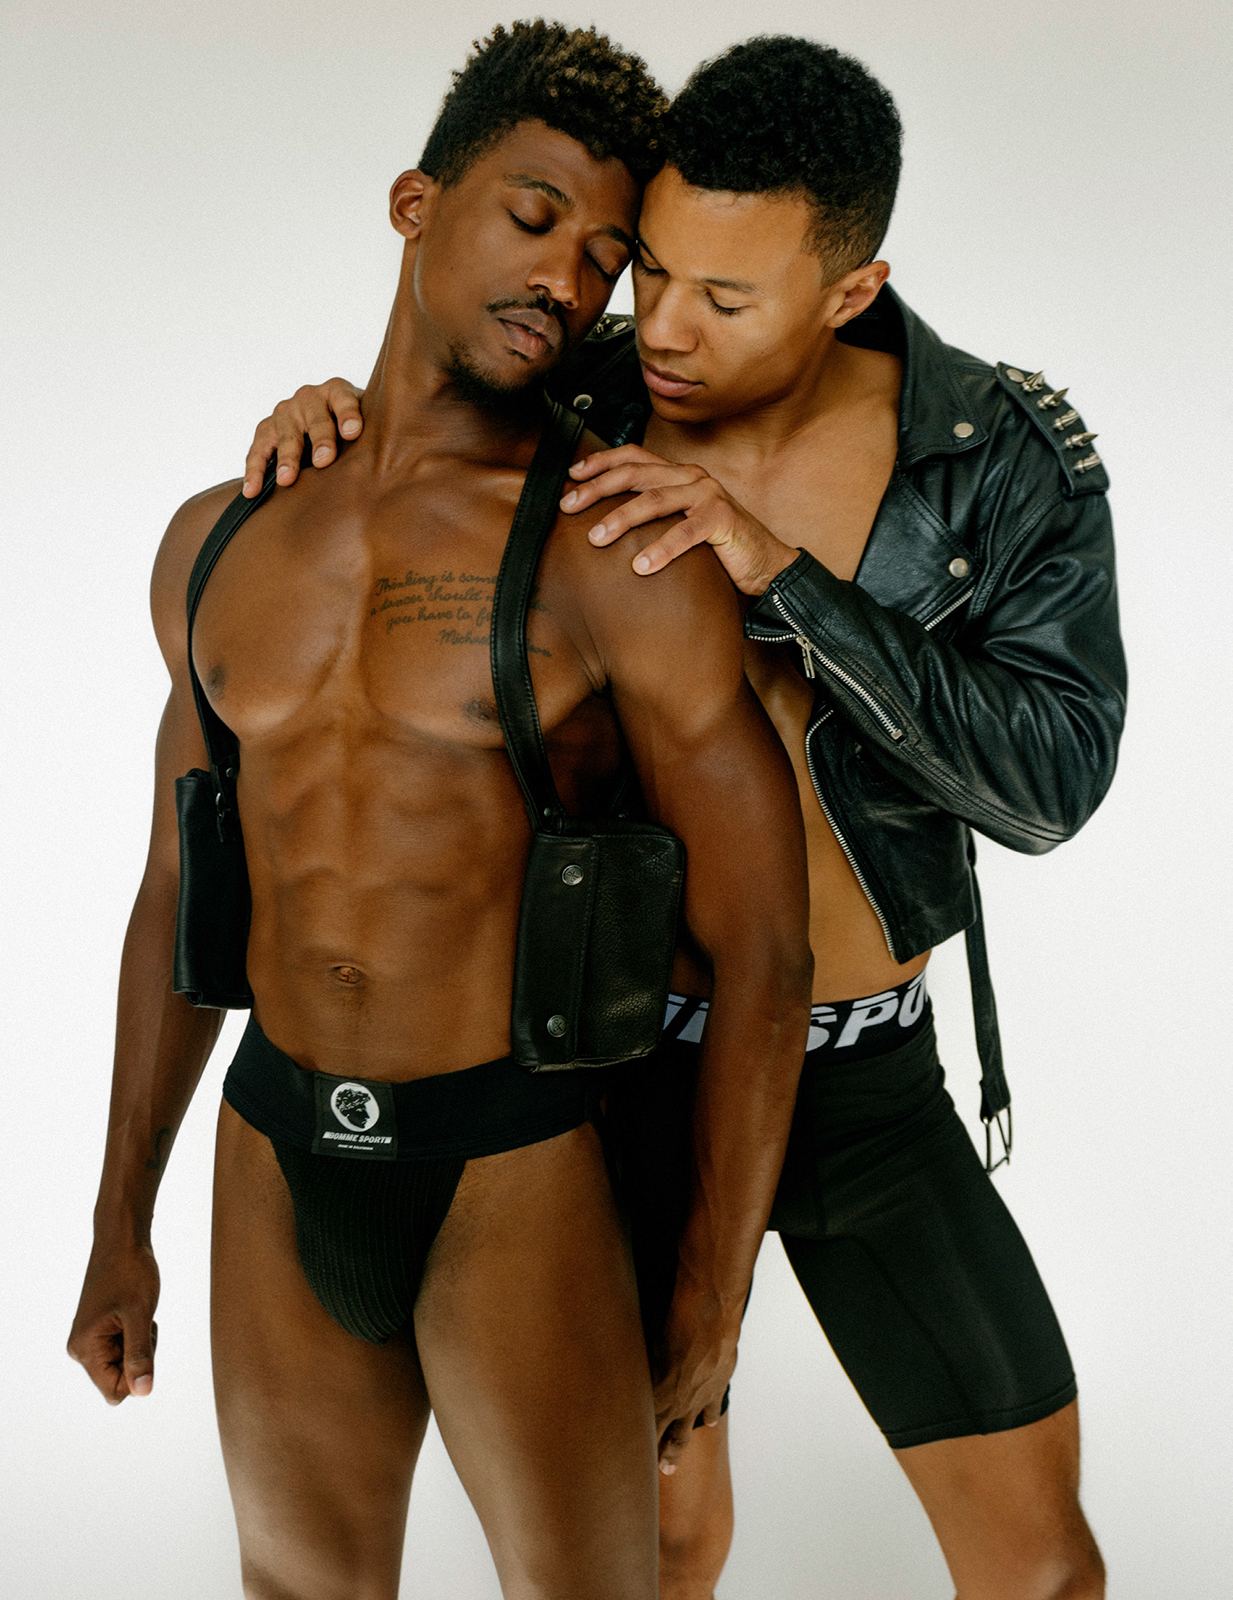 Chicago black gay men's caucus holds open house